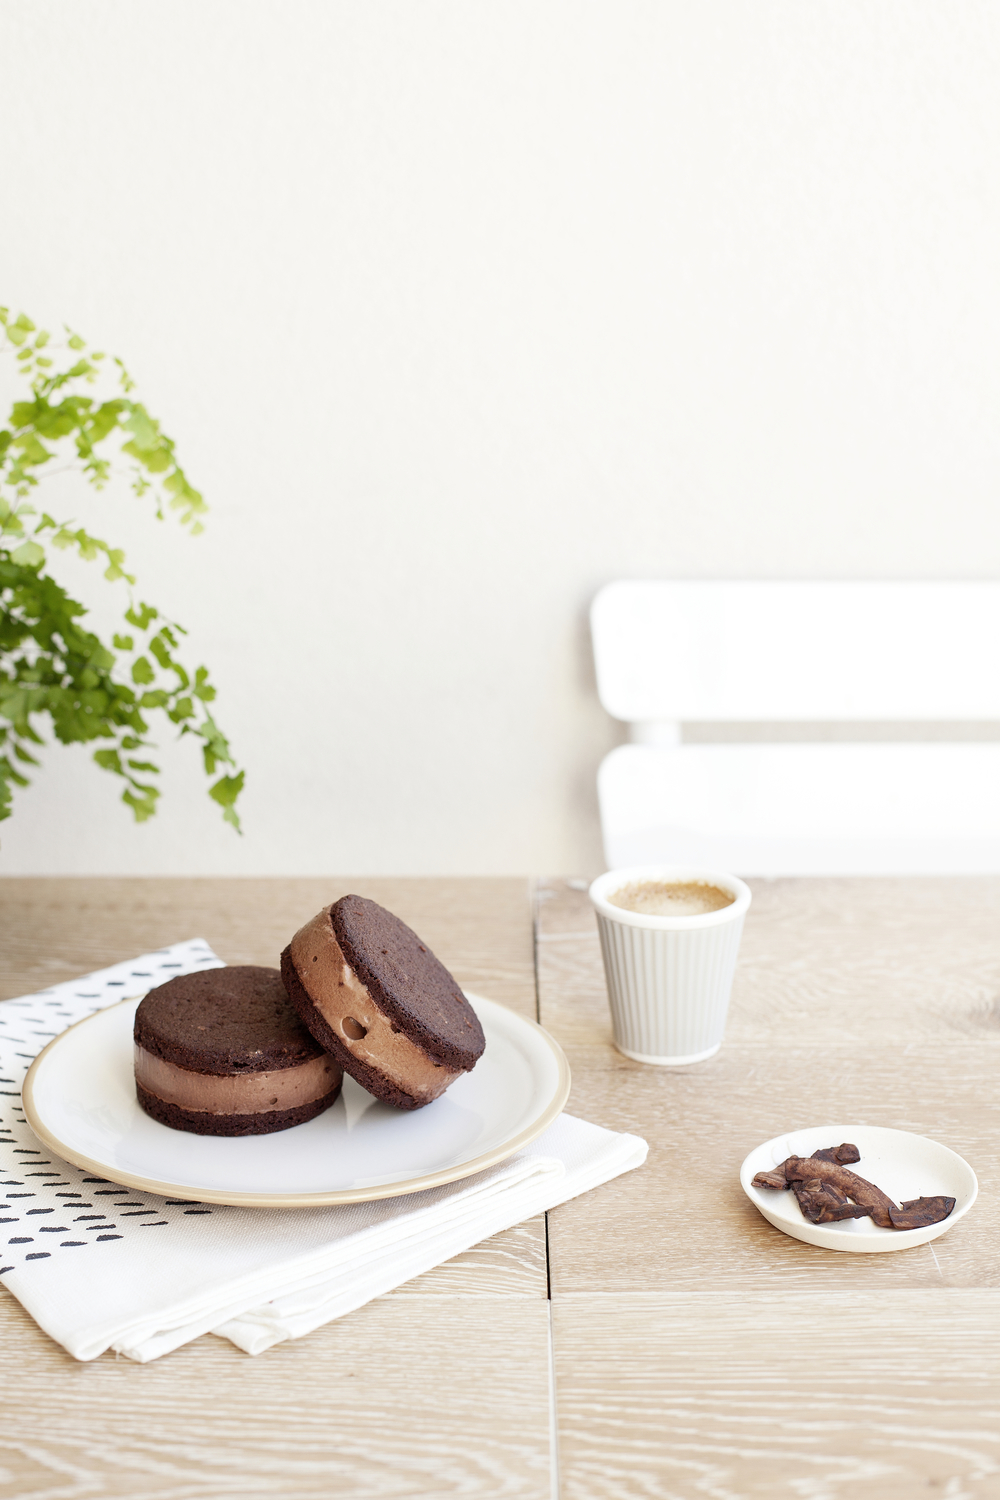 Kenkō Kitchen Ice Cream Sandwiches. Tea towel by  Spin Spin . Small cup and plate from Merci Paris. Large plate from Op Shop. Styling by  Kate Bradley , Photography by  Elisa Watson .